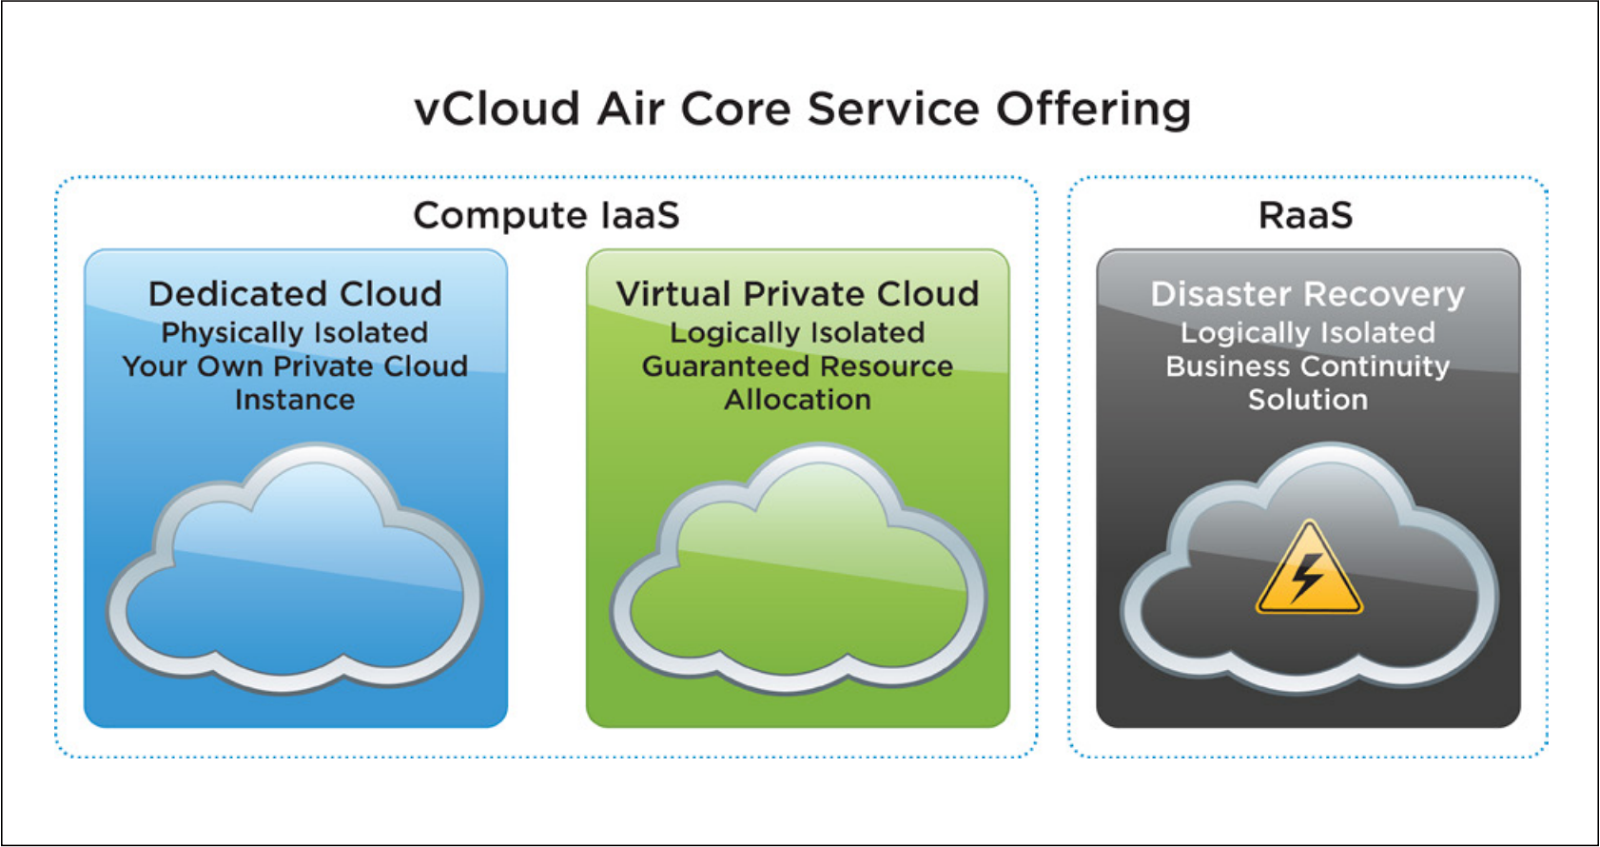 vCloud Air Core Service